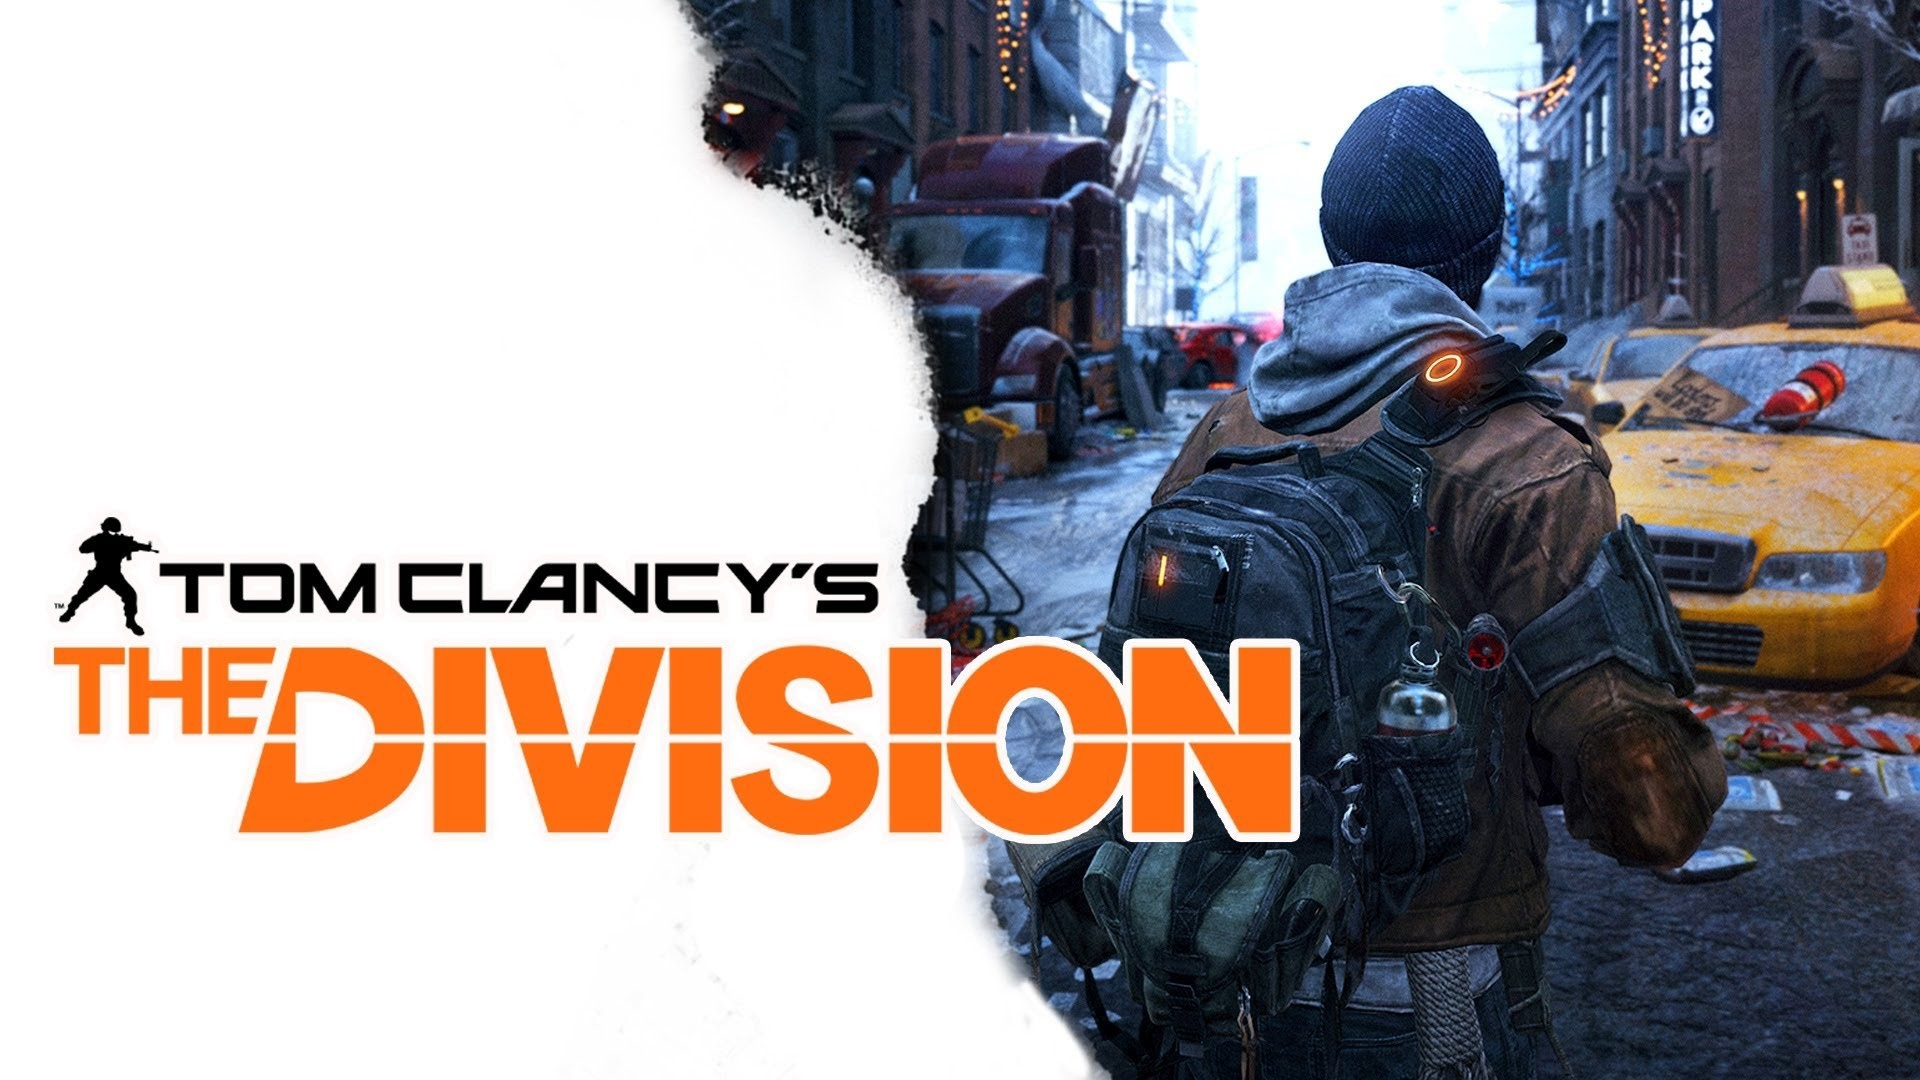 tom-clancys-the-division-wallpaper-1920×1080-1080p